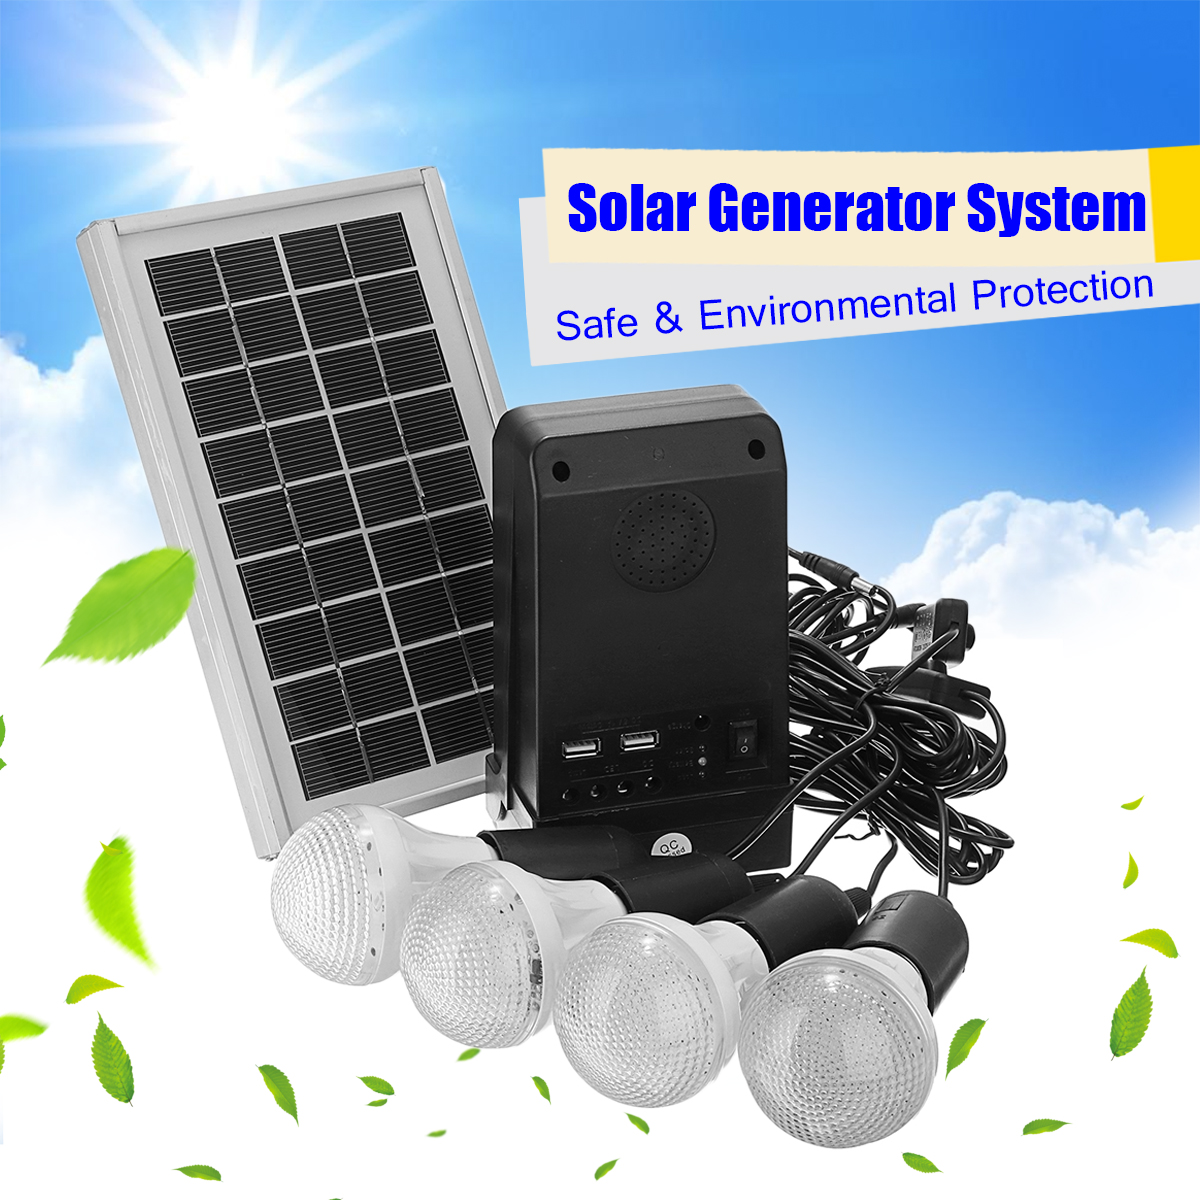 Solar Panel Solar Powered 3W With 4 LED Bulbs System 7.4V 2200mAH Lithium Battery Controller Indoor Outdoor Home Protection